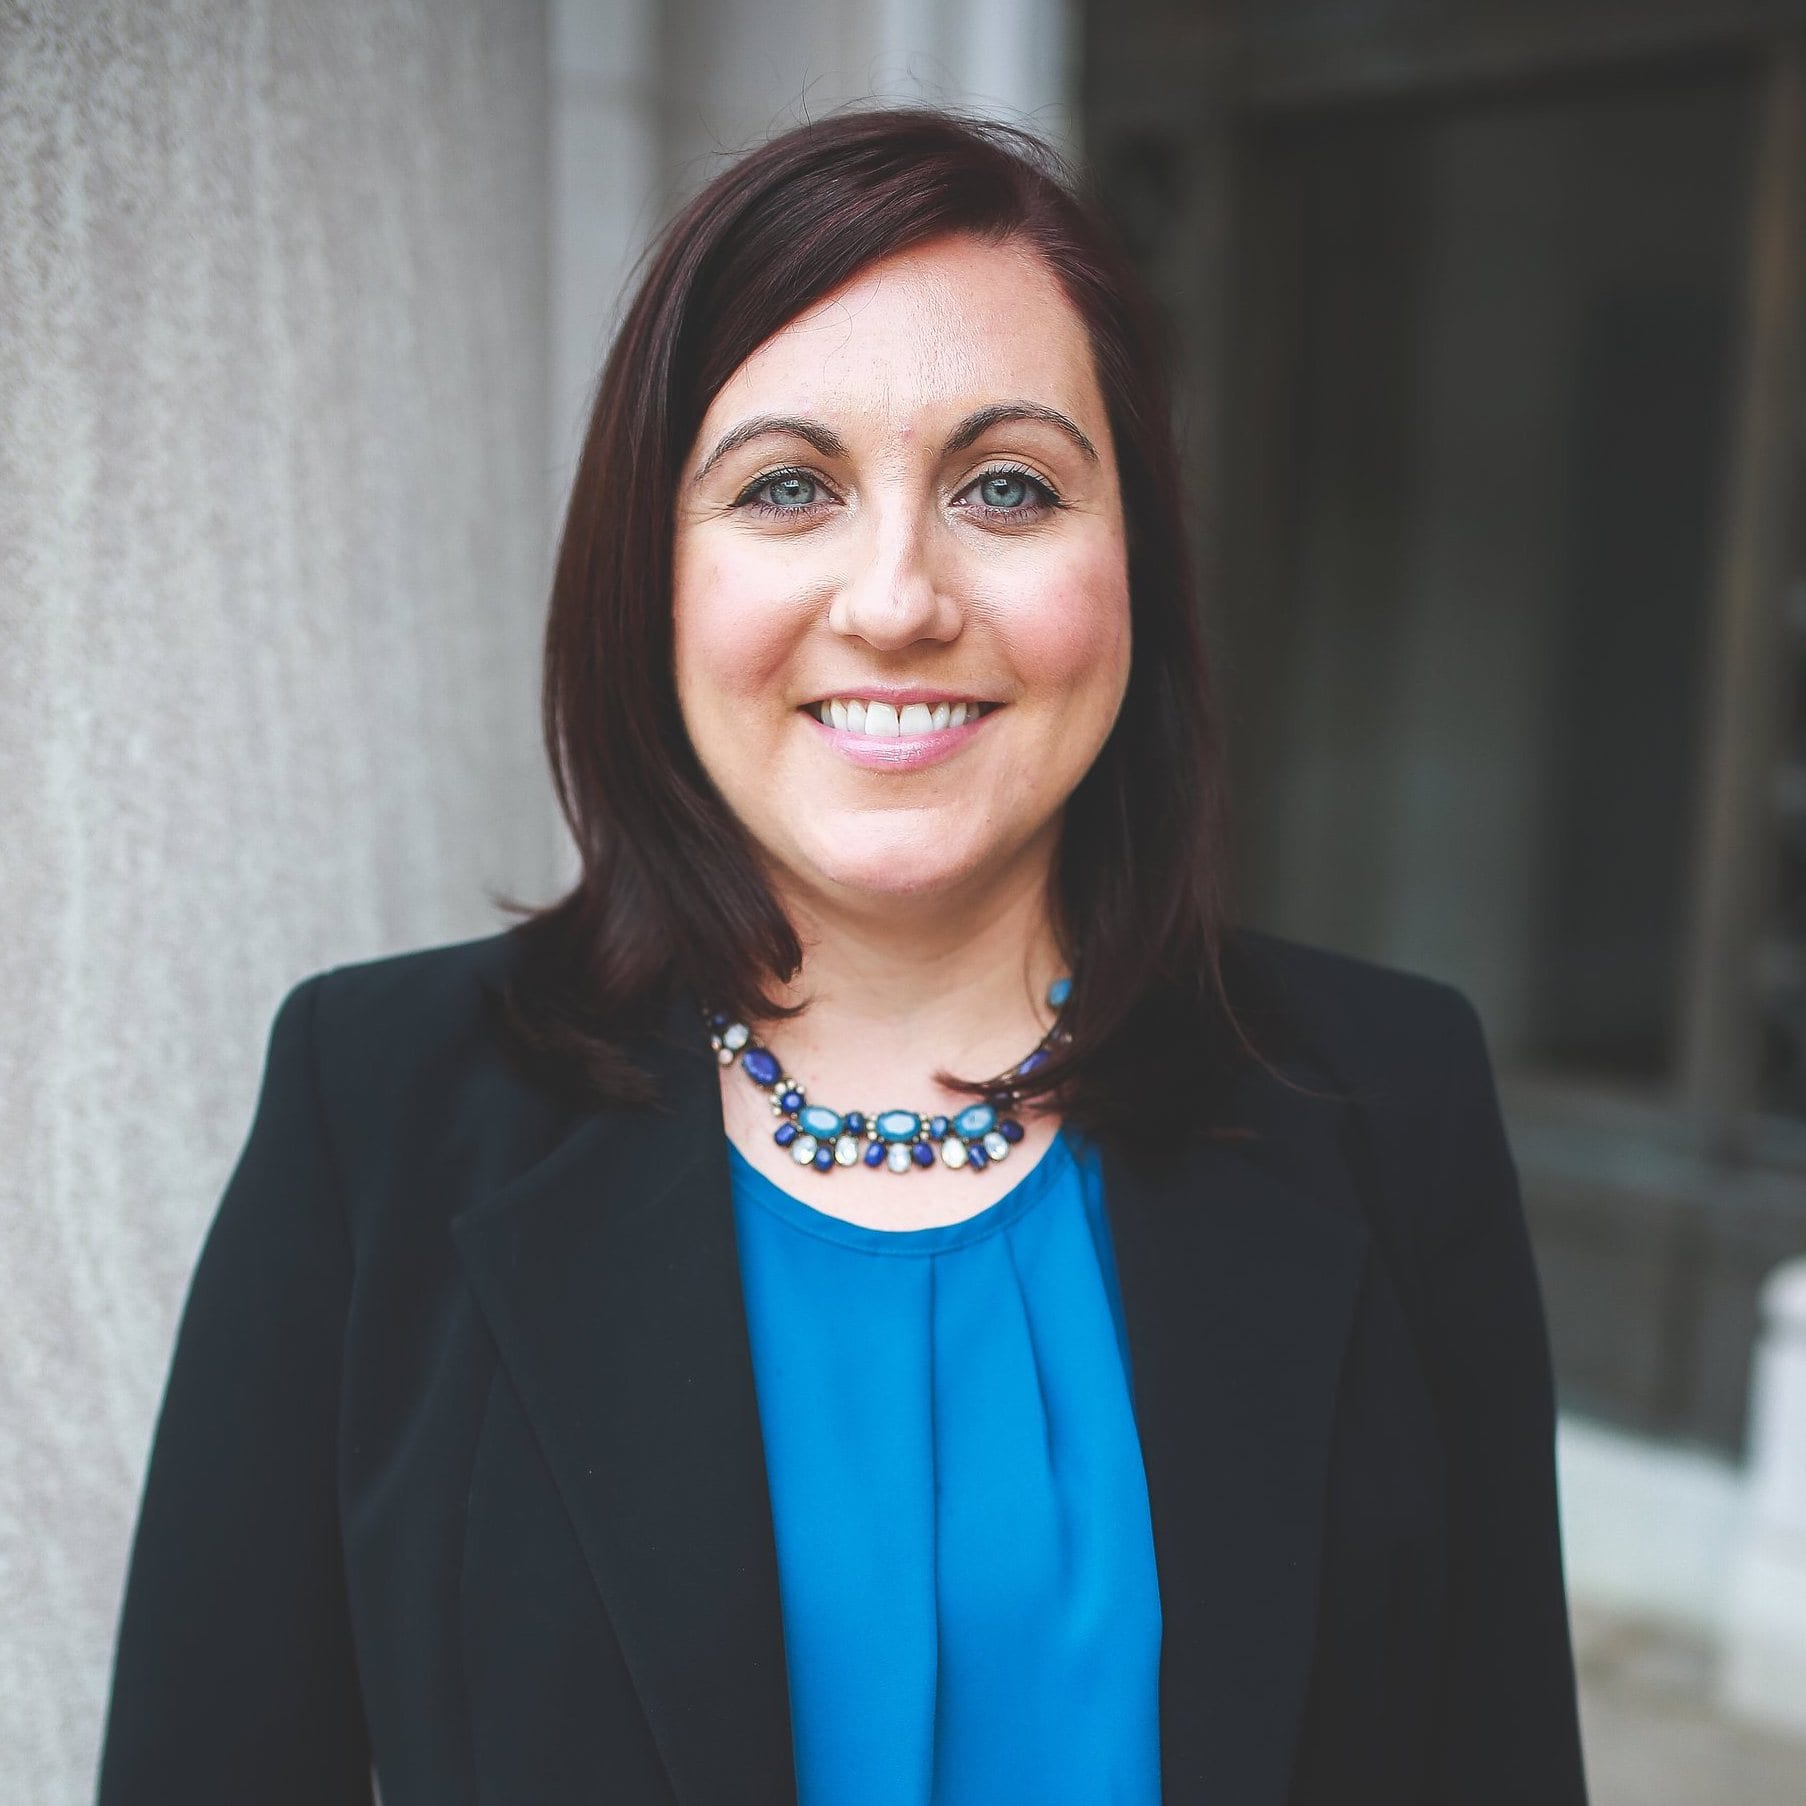 Amanda C. Nugent professional attorney profile picture. Practicing in Appeals, Commercial Litigation, and Litigation law.